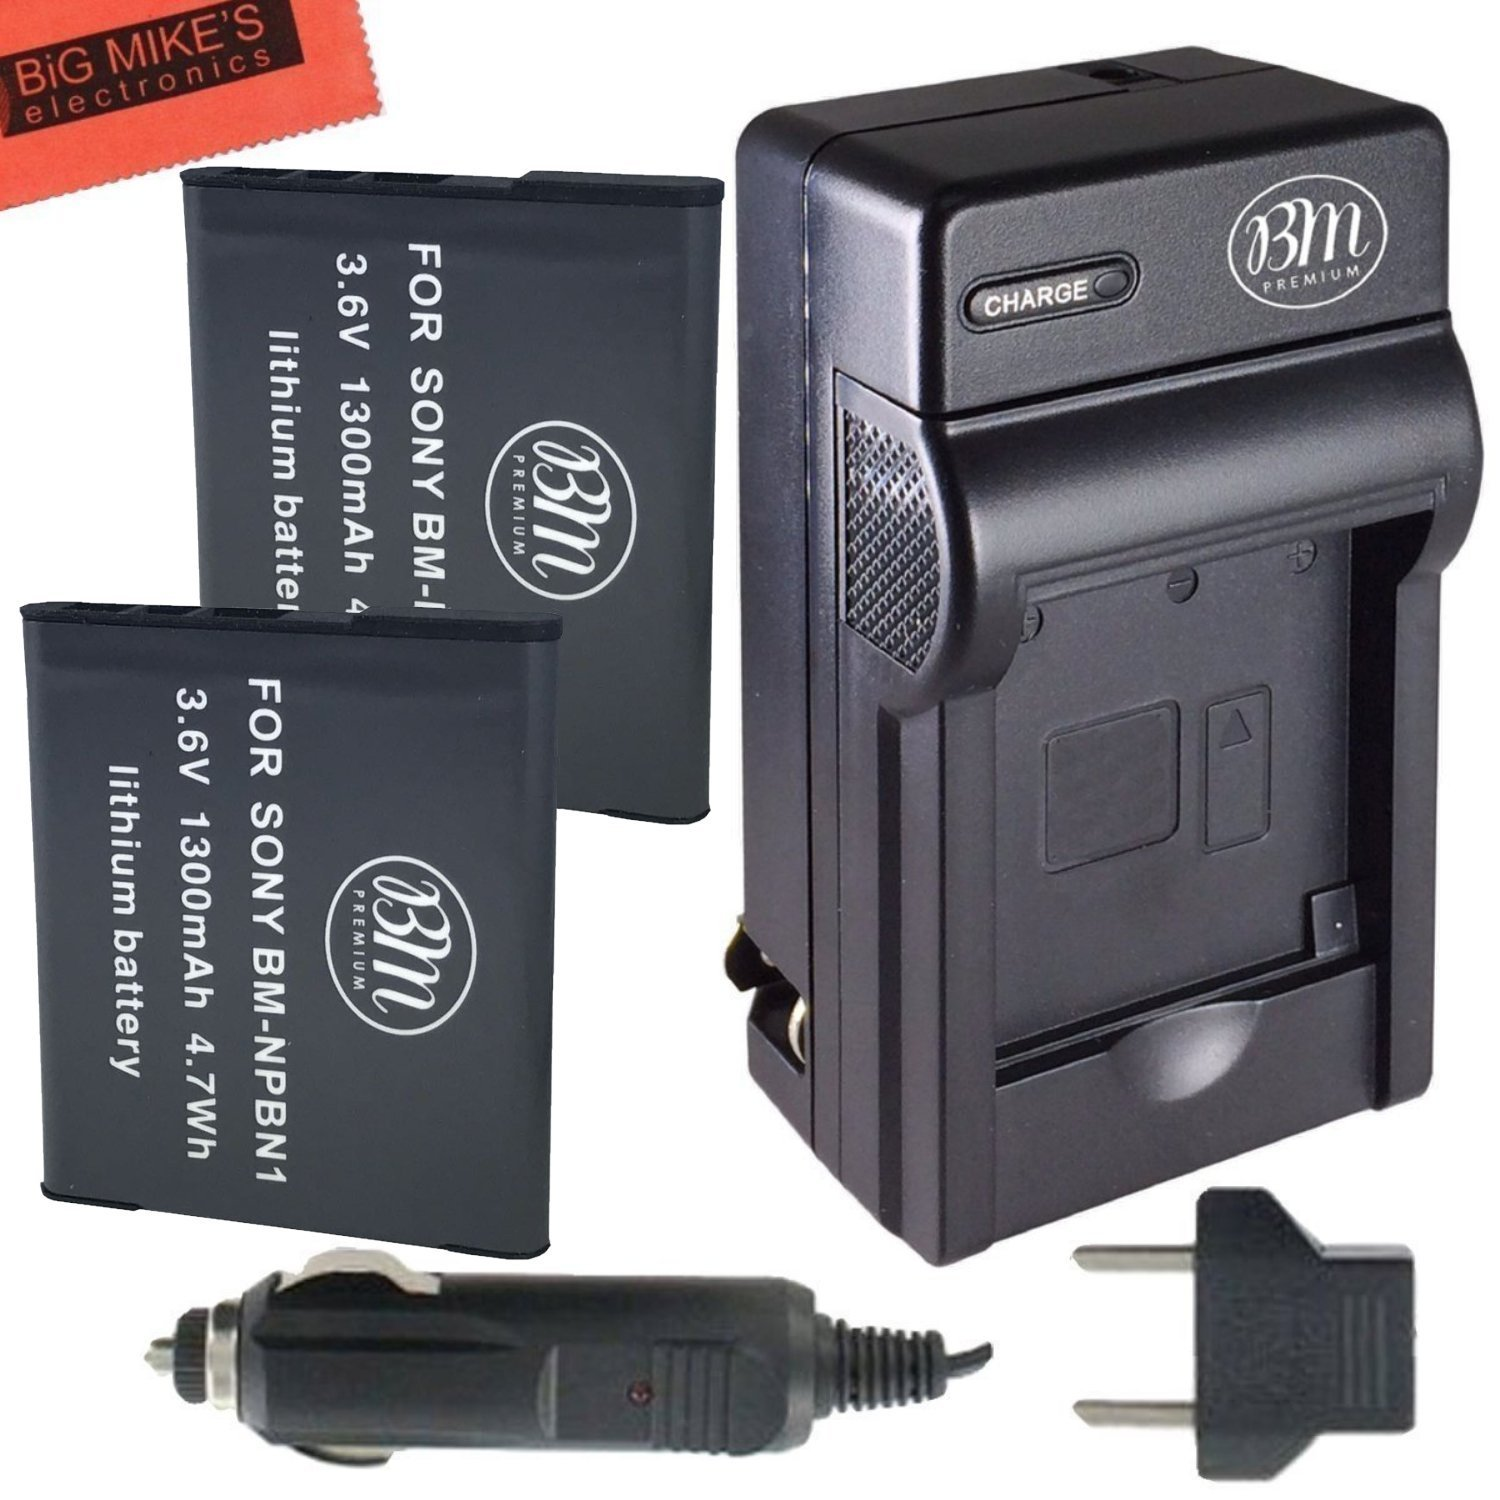 Buy Bm Premium 2 Pack Of Np Bn1 Batteries For Sony Cyber Shot Dsc Battery Recommended You Teqin Compatible Li Ion